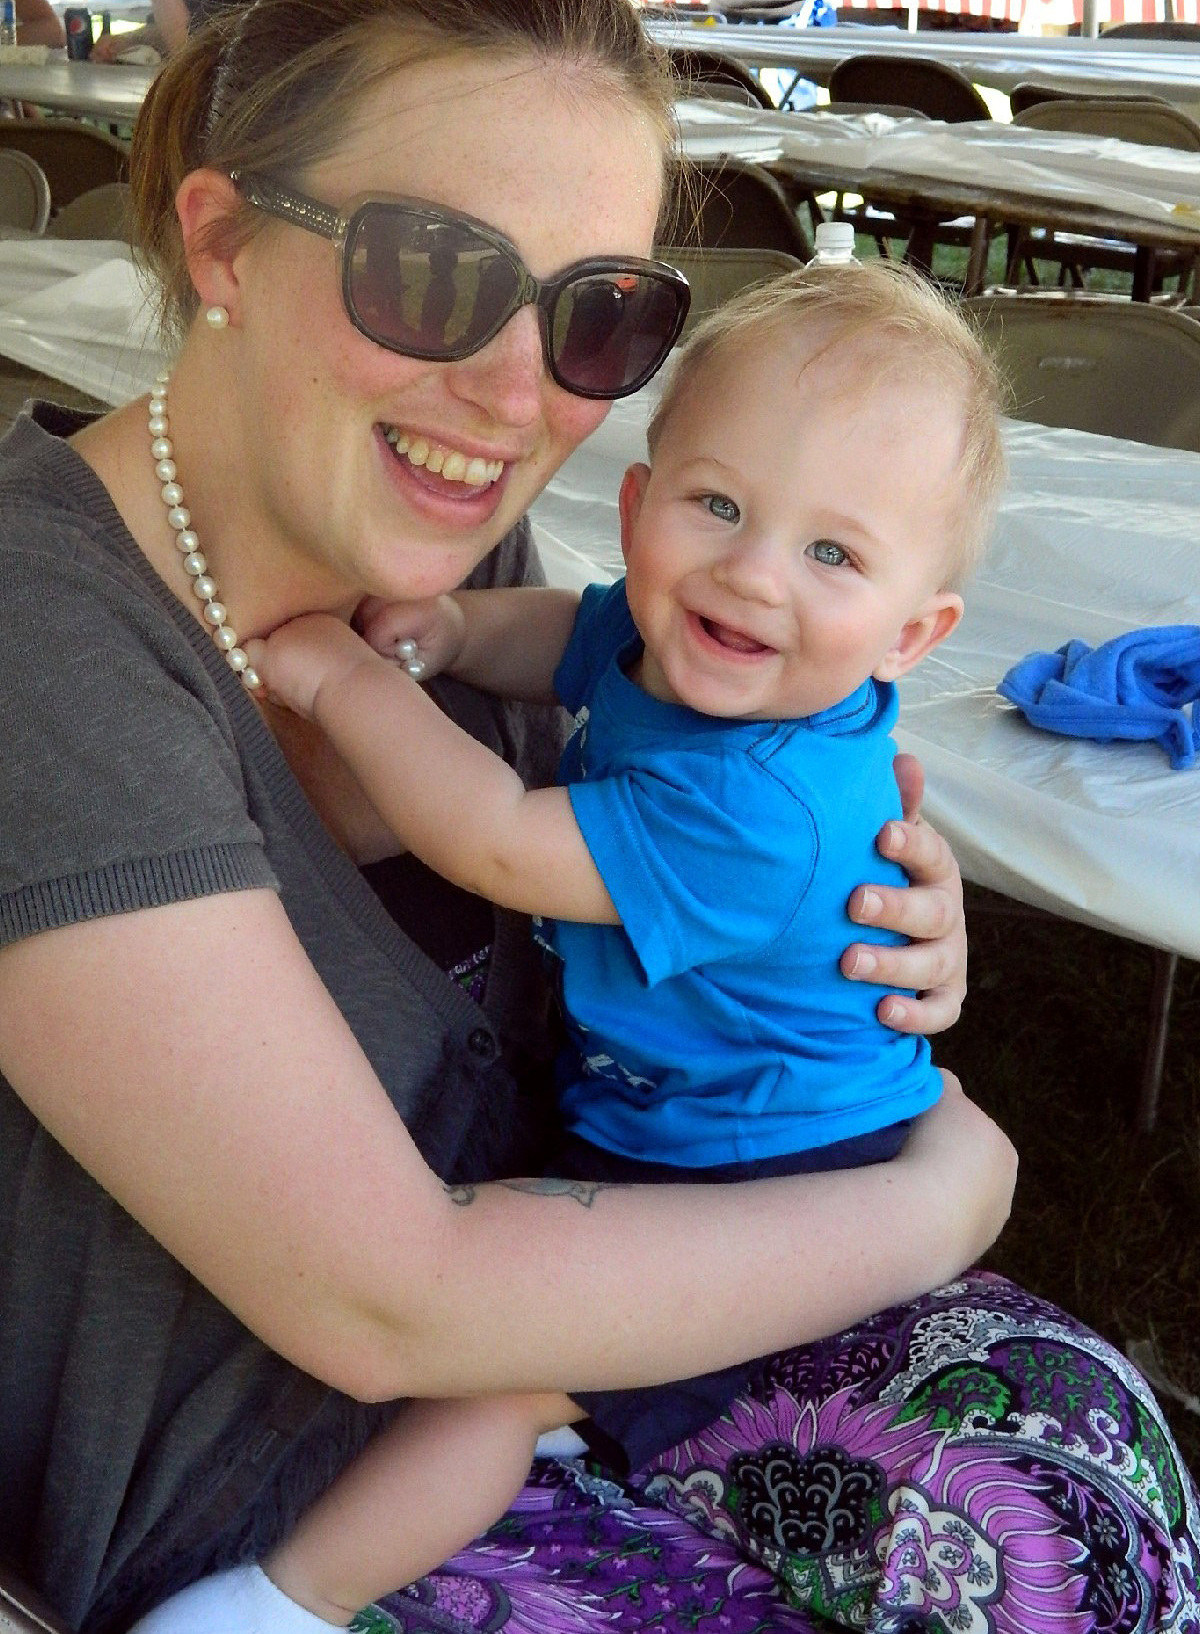 Sayra Small, with her son, Holden. Small is now in recovery after an addiction to benzodiazepines and opioid painkillers.